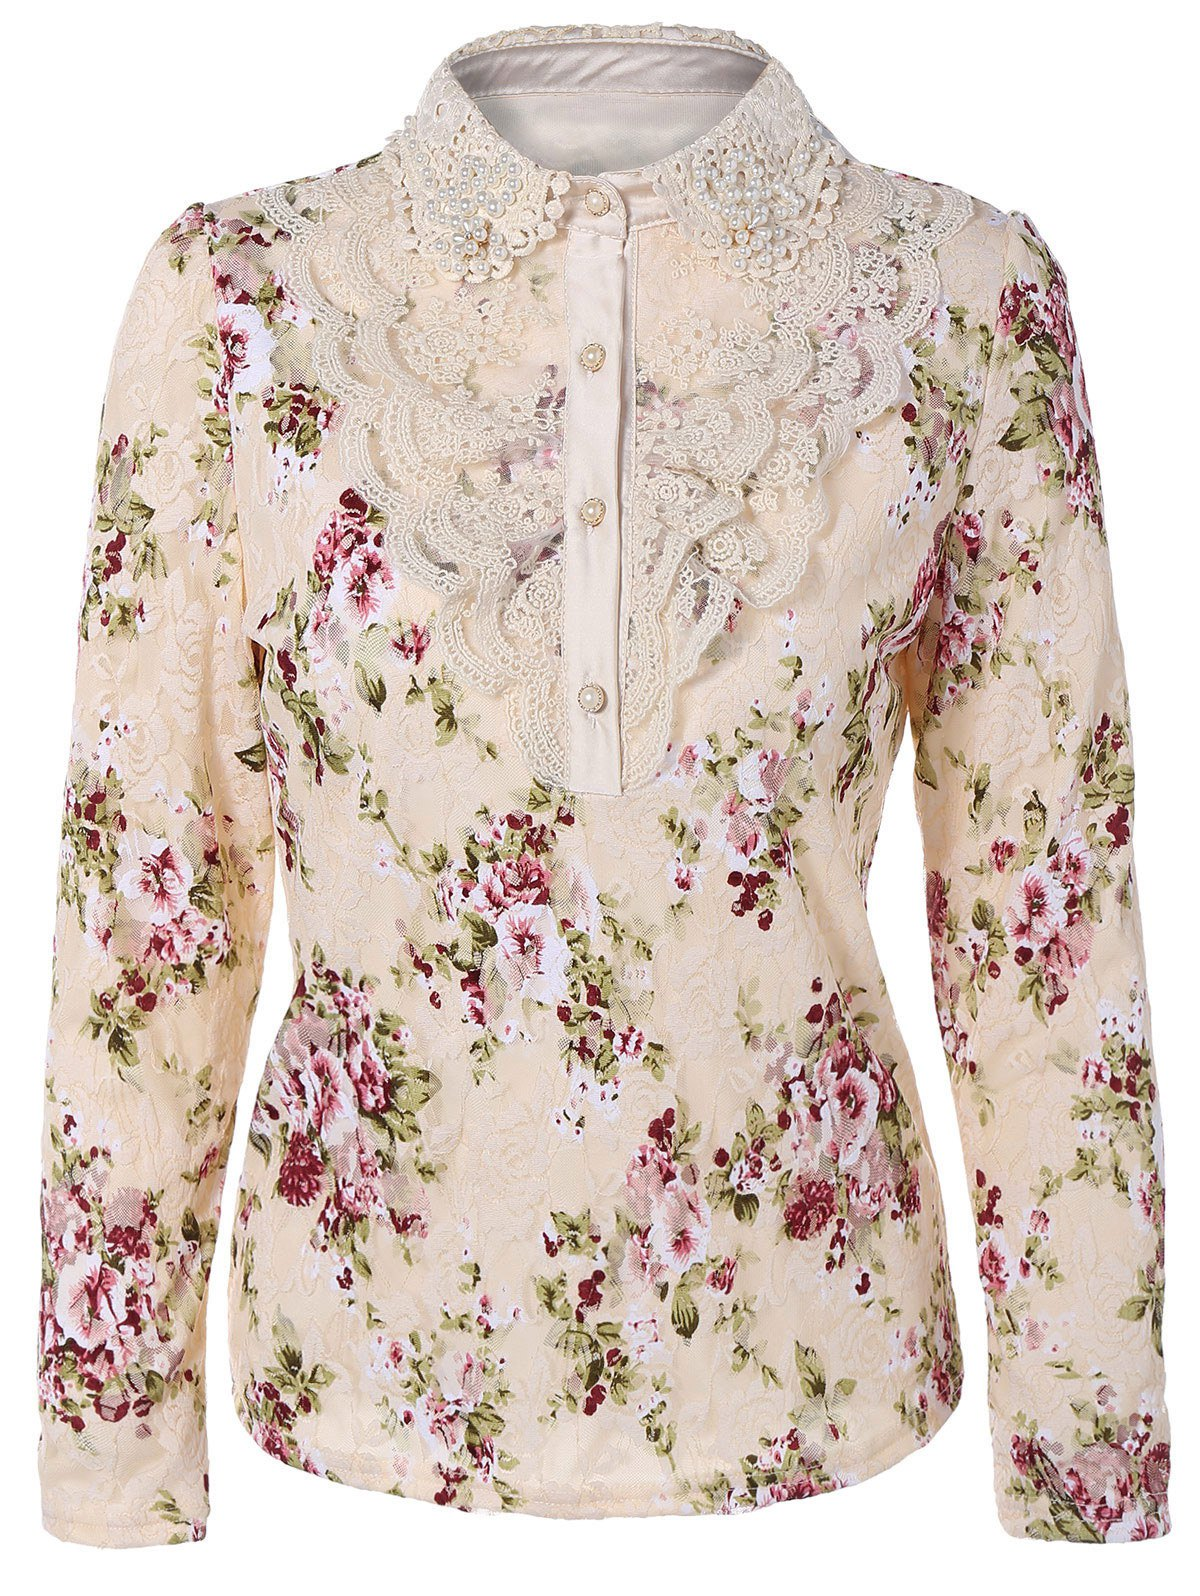 Floral Print Lace Panel Blouse - LIGHT APRICOT L